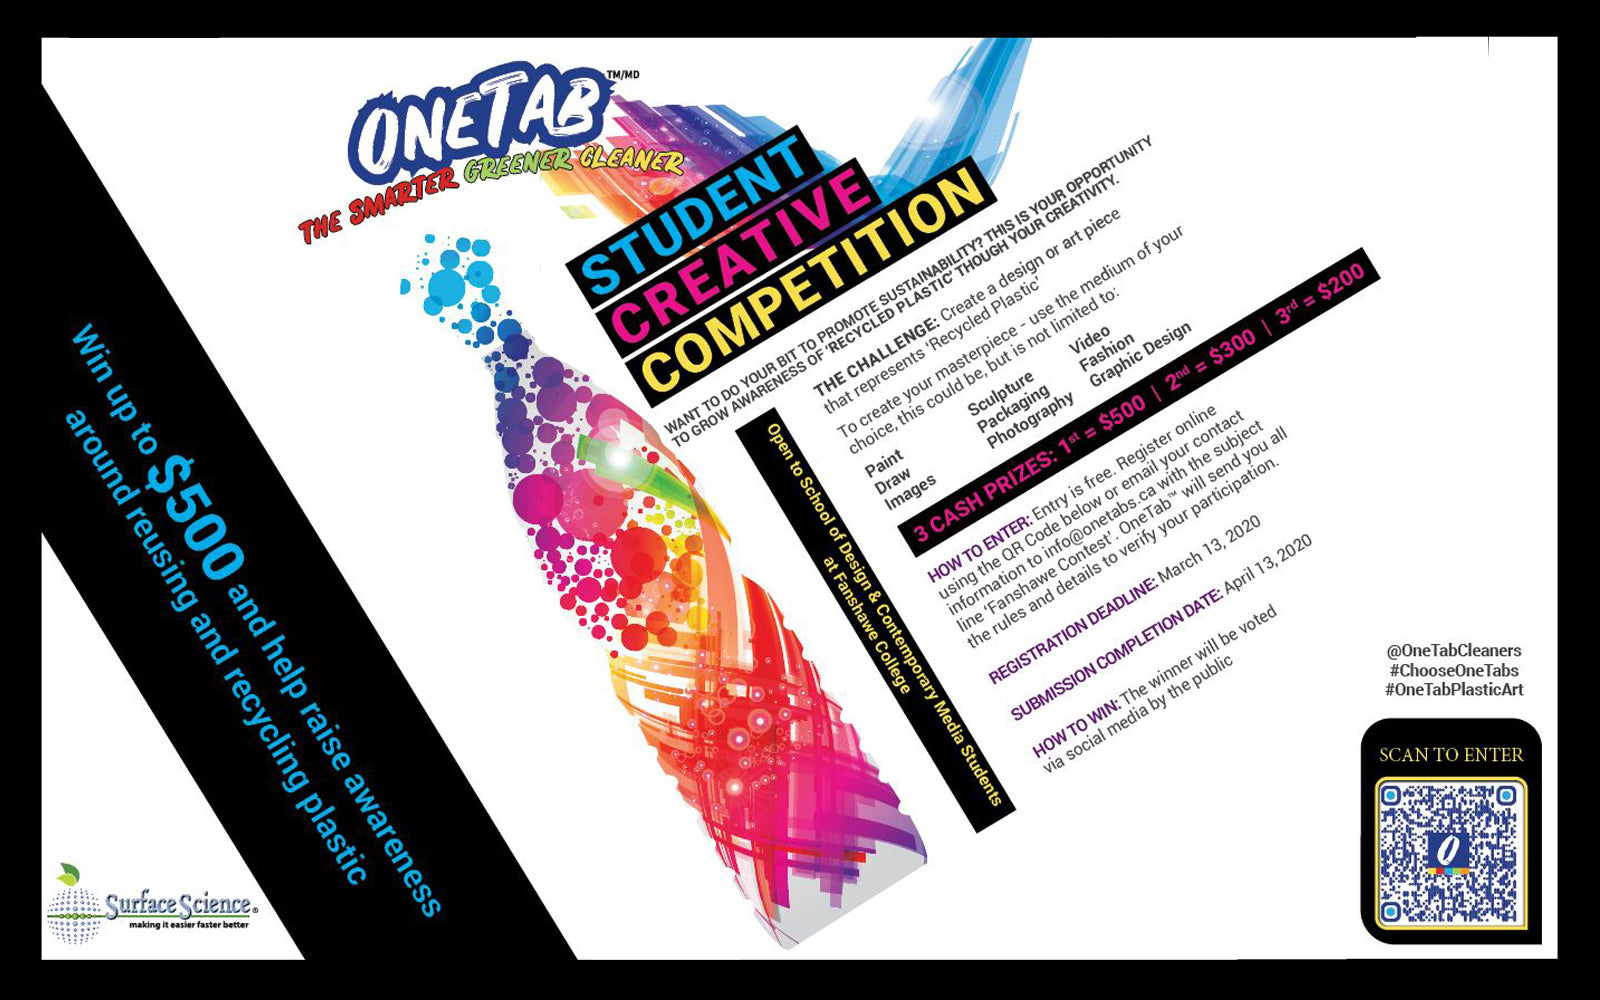 OneTab Launches Fanshawe Contest